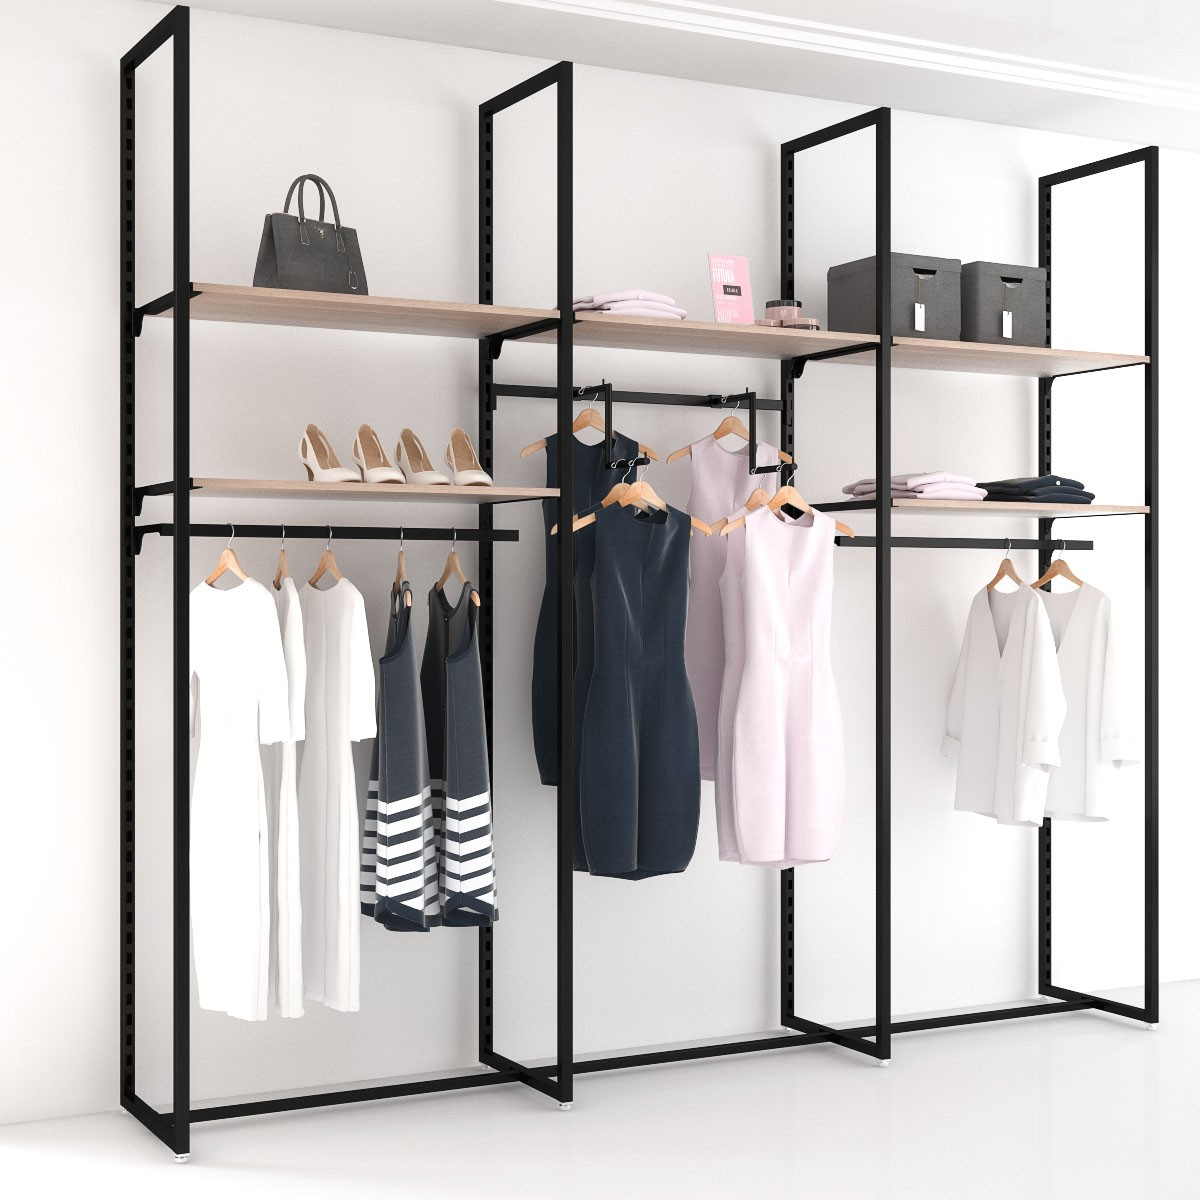 wandsystem_brooklyn_1 - shopfitting24